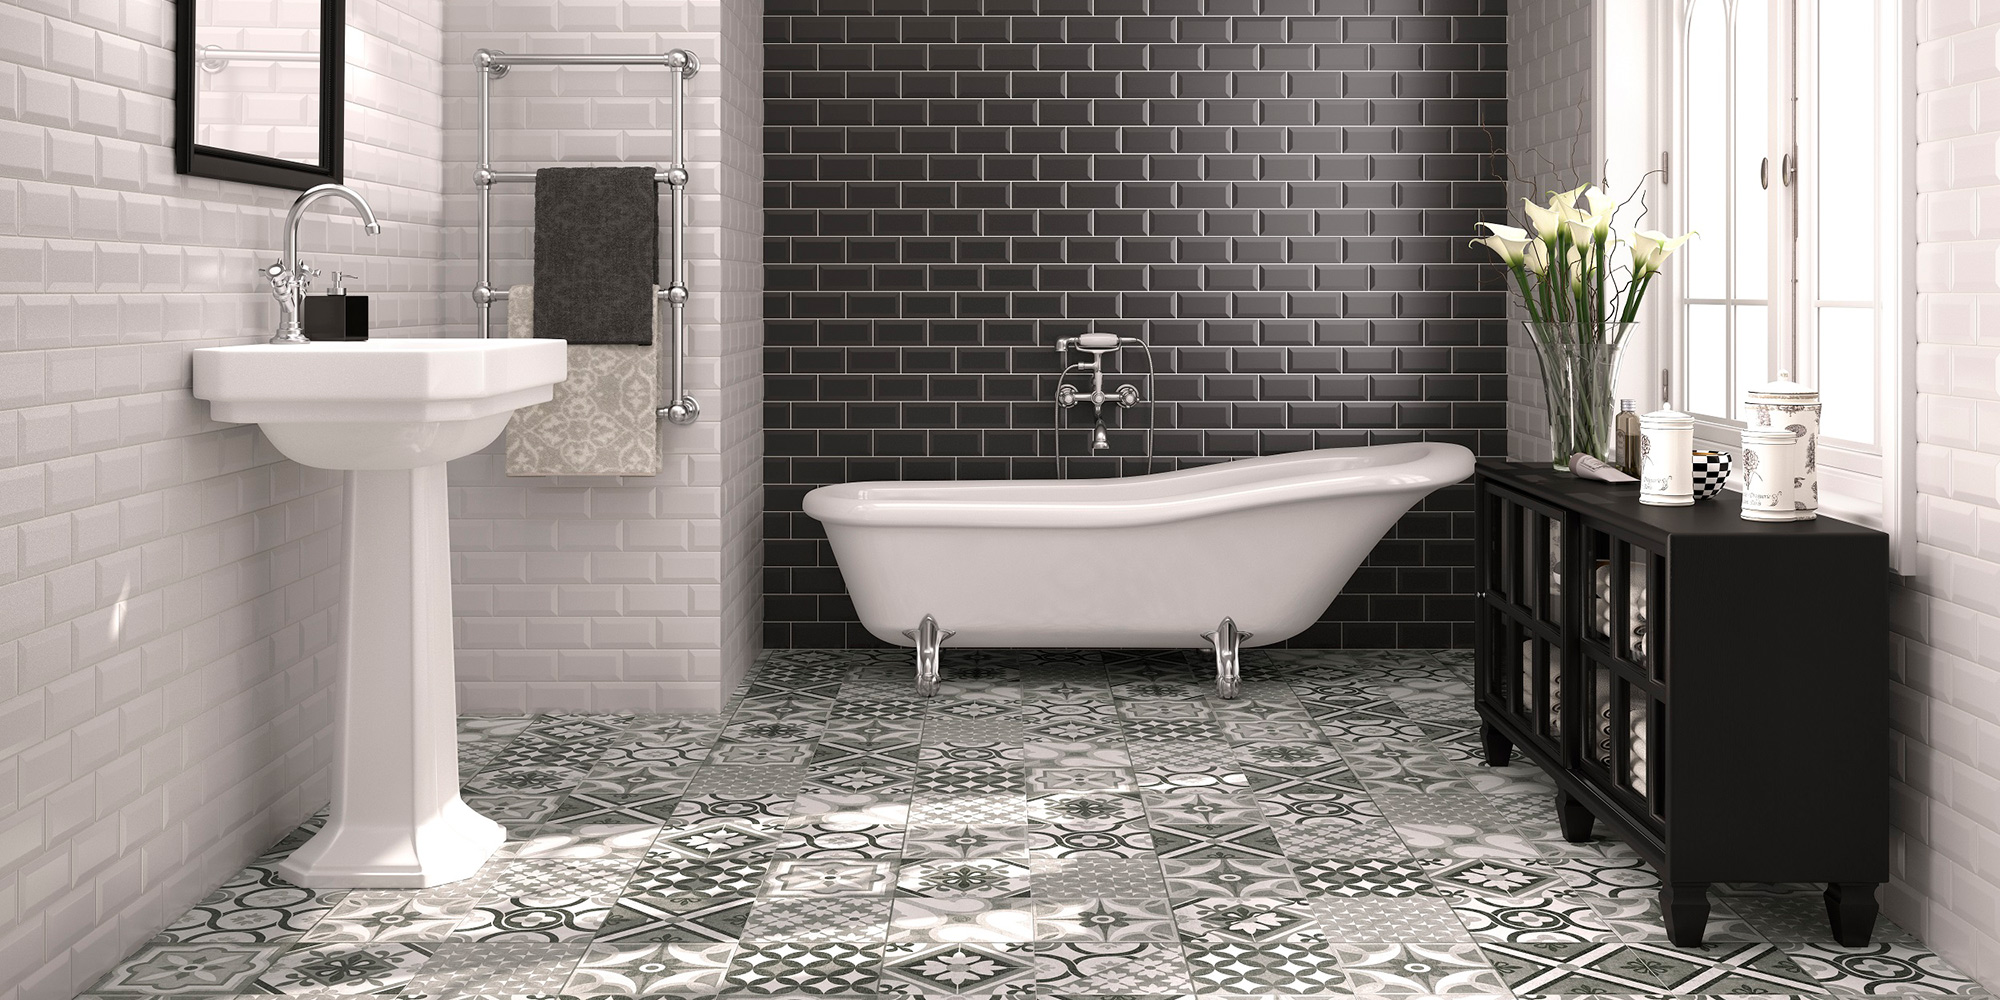 Biselado / Brillo Liso. Monocolour, Victorian style bevelled metro / subway tiles for bathroom and kitchen walls.